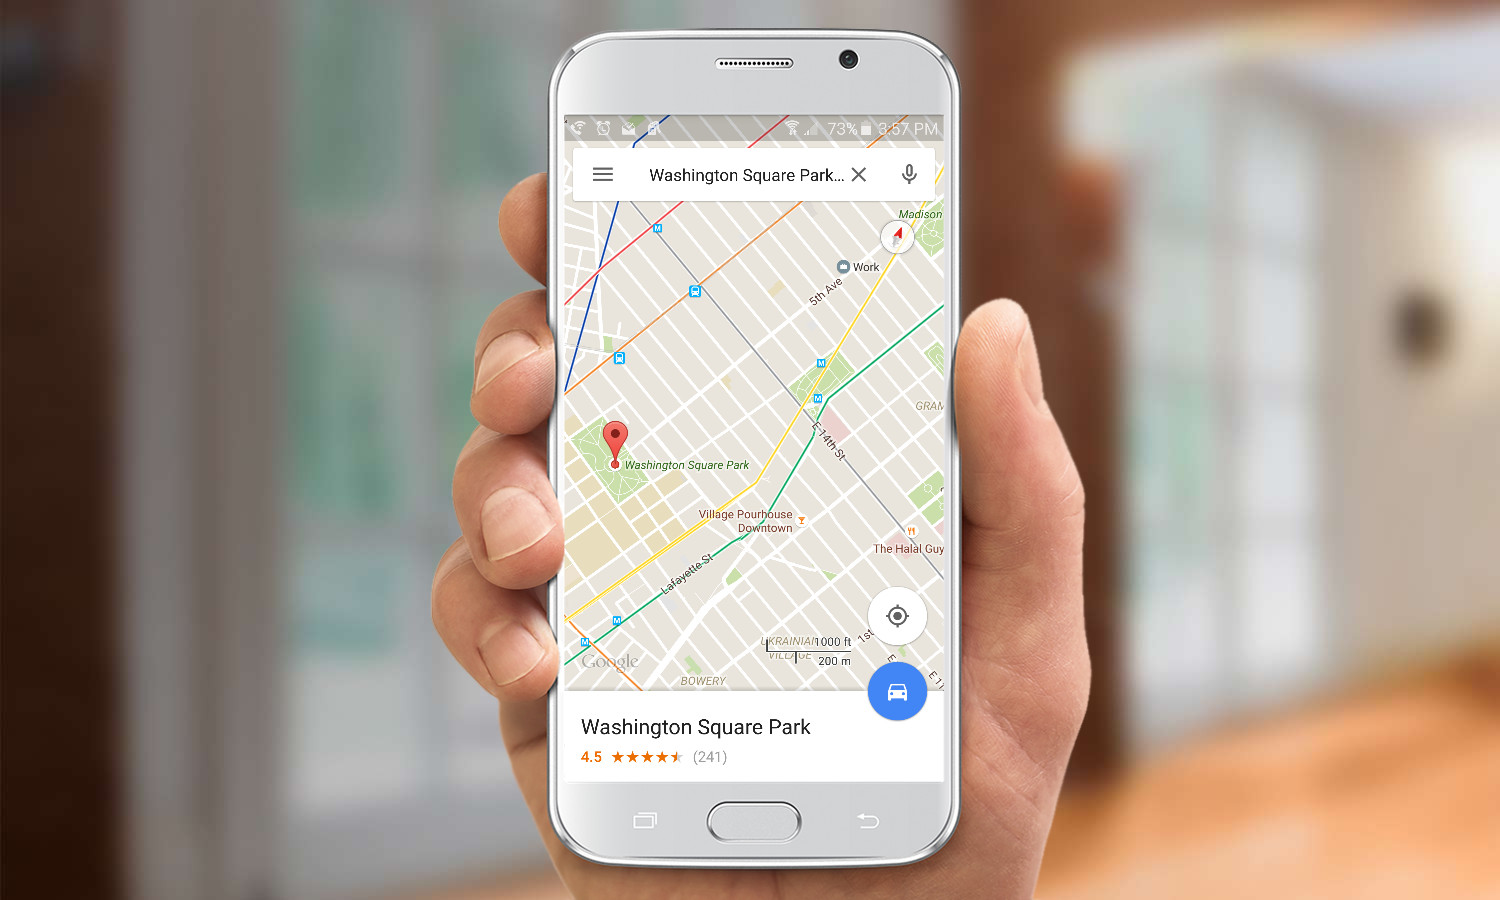 How to Send Google Maps Directions to Your Android Phone ... Google Map On Mobile Phone on google maps android, iphone 5 mobile phone, google maps for car, nexus 7 mobile phone, google nexus mobile phone, google boost mobile phone, galaxy s4 mobile phone, google maps iphone,